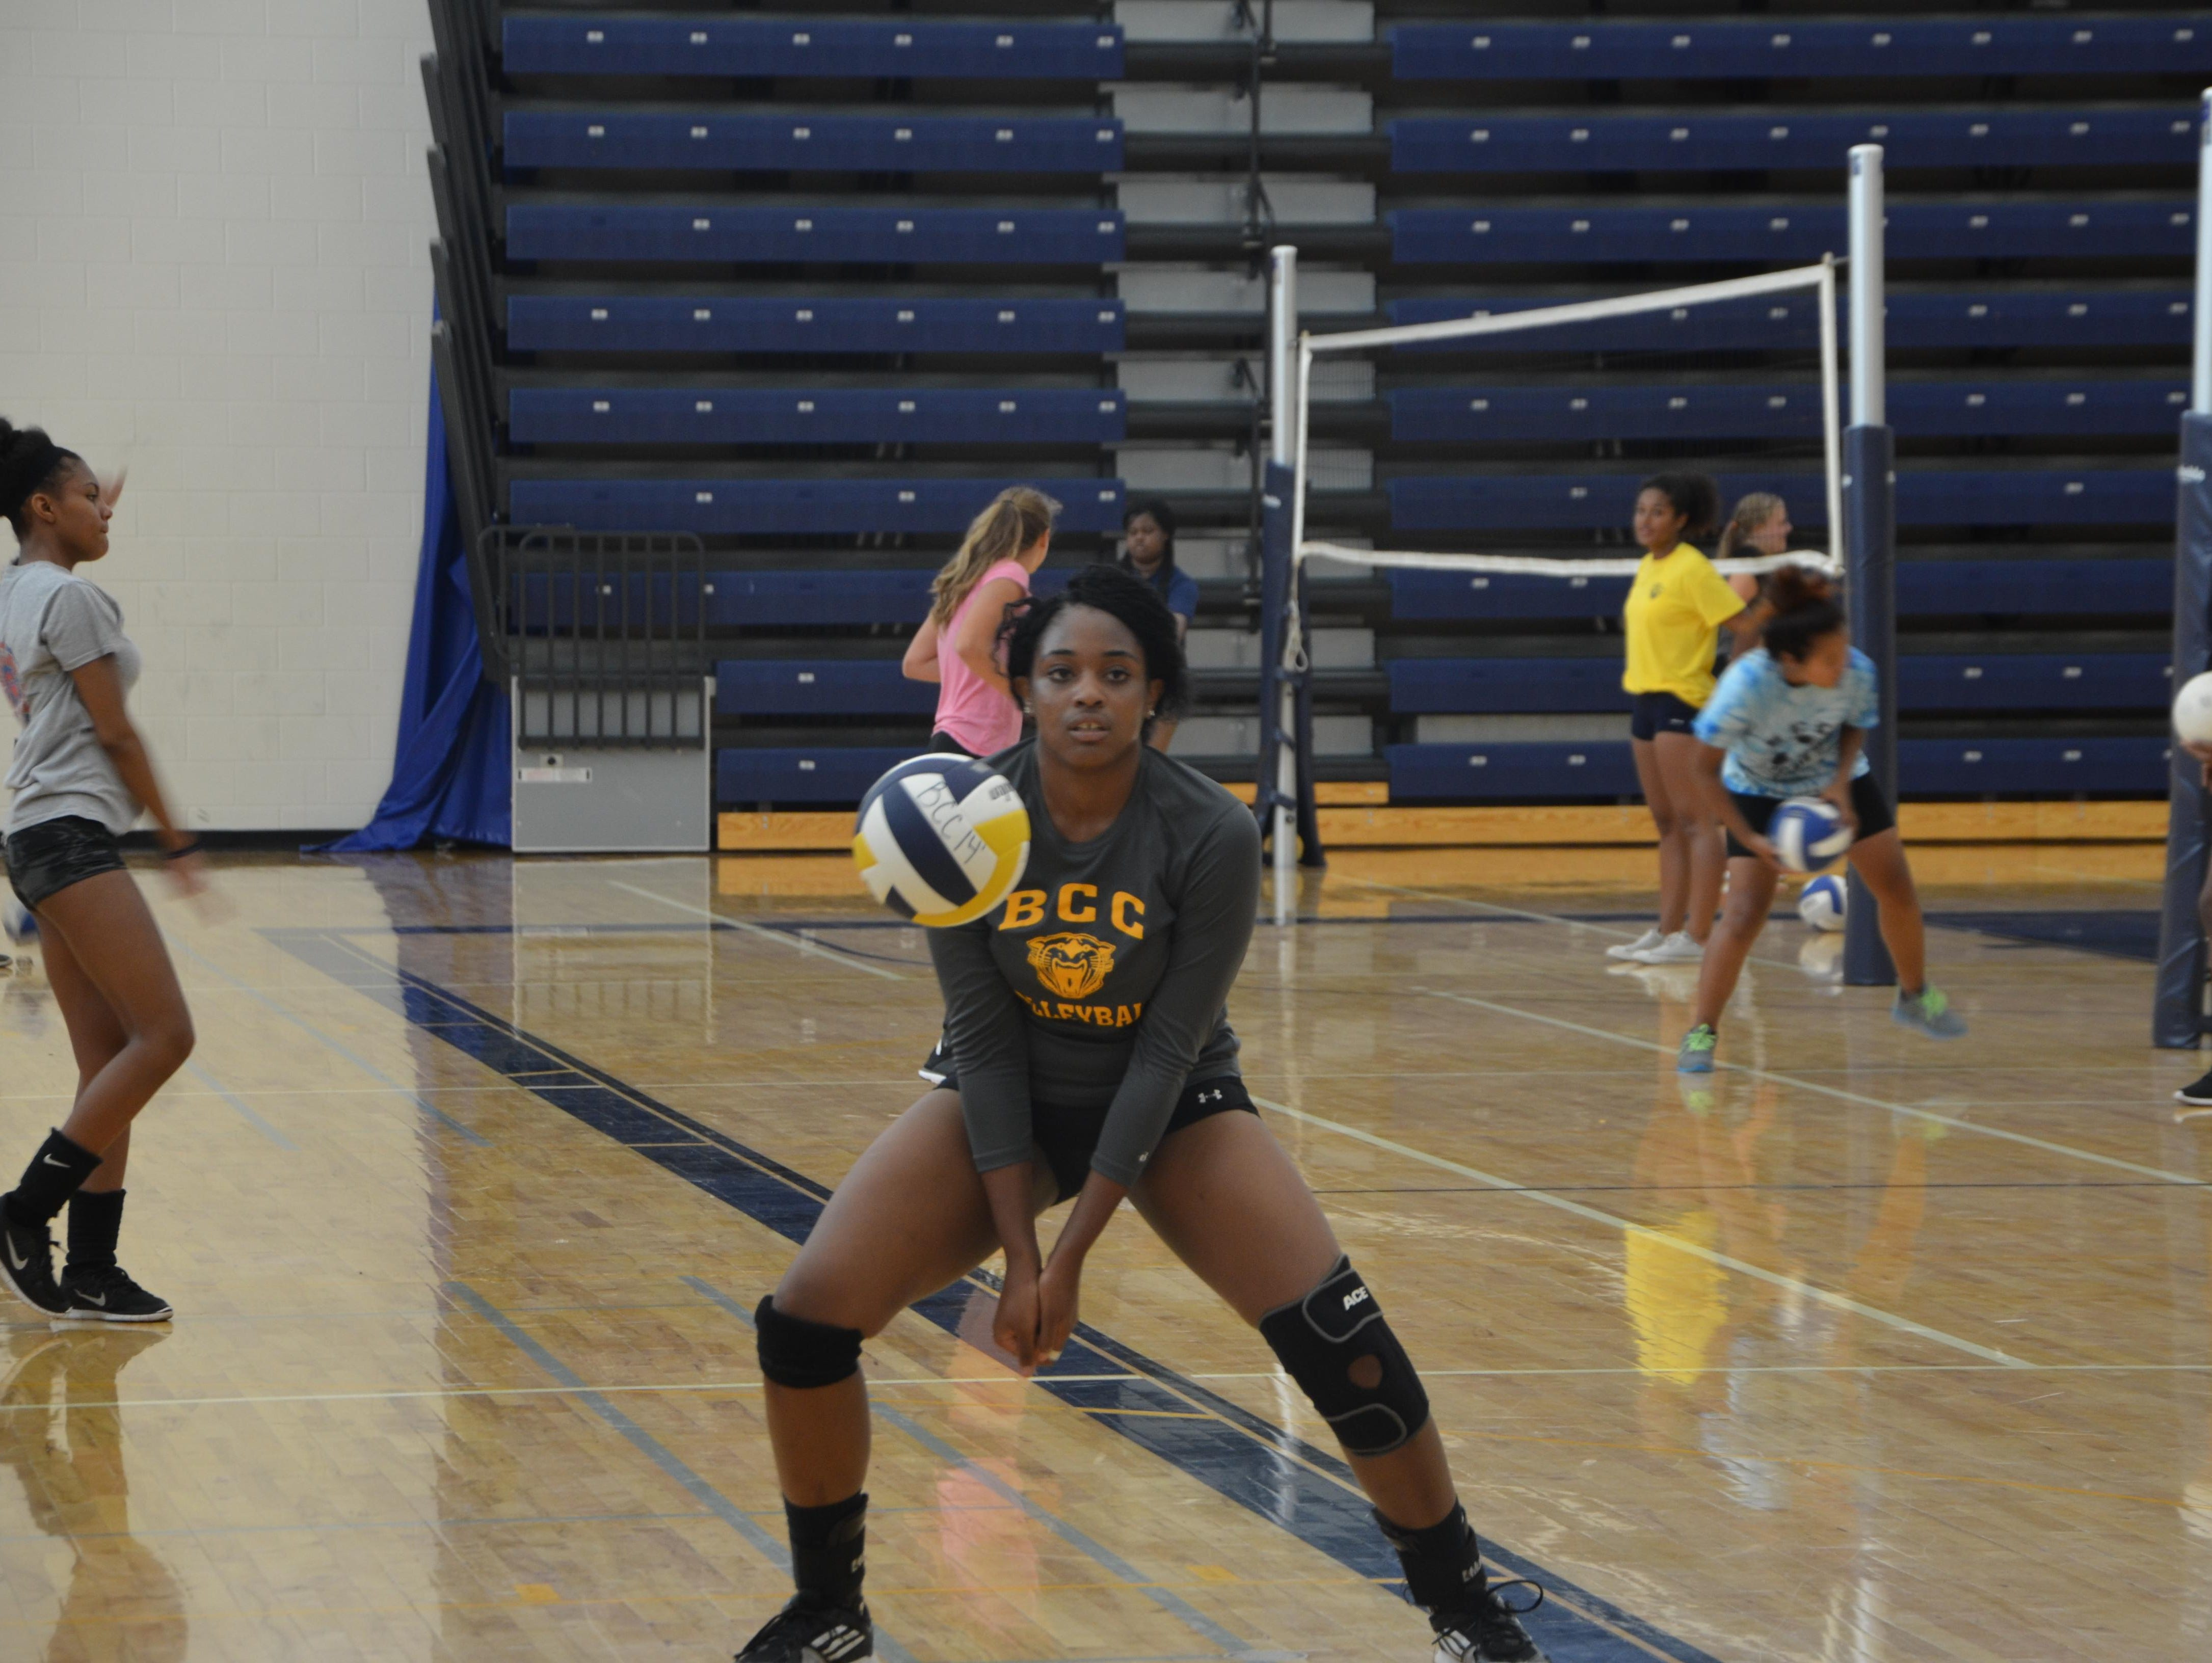 Battle Creek Central's Jamesha Smith digs the ball for a drill during the first volleyball practice of the season on Wednesday.